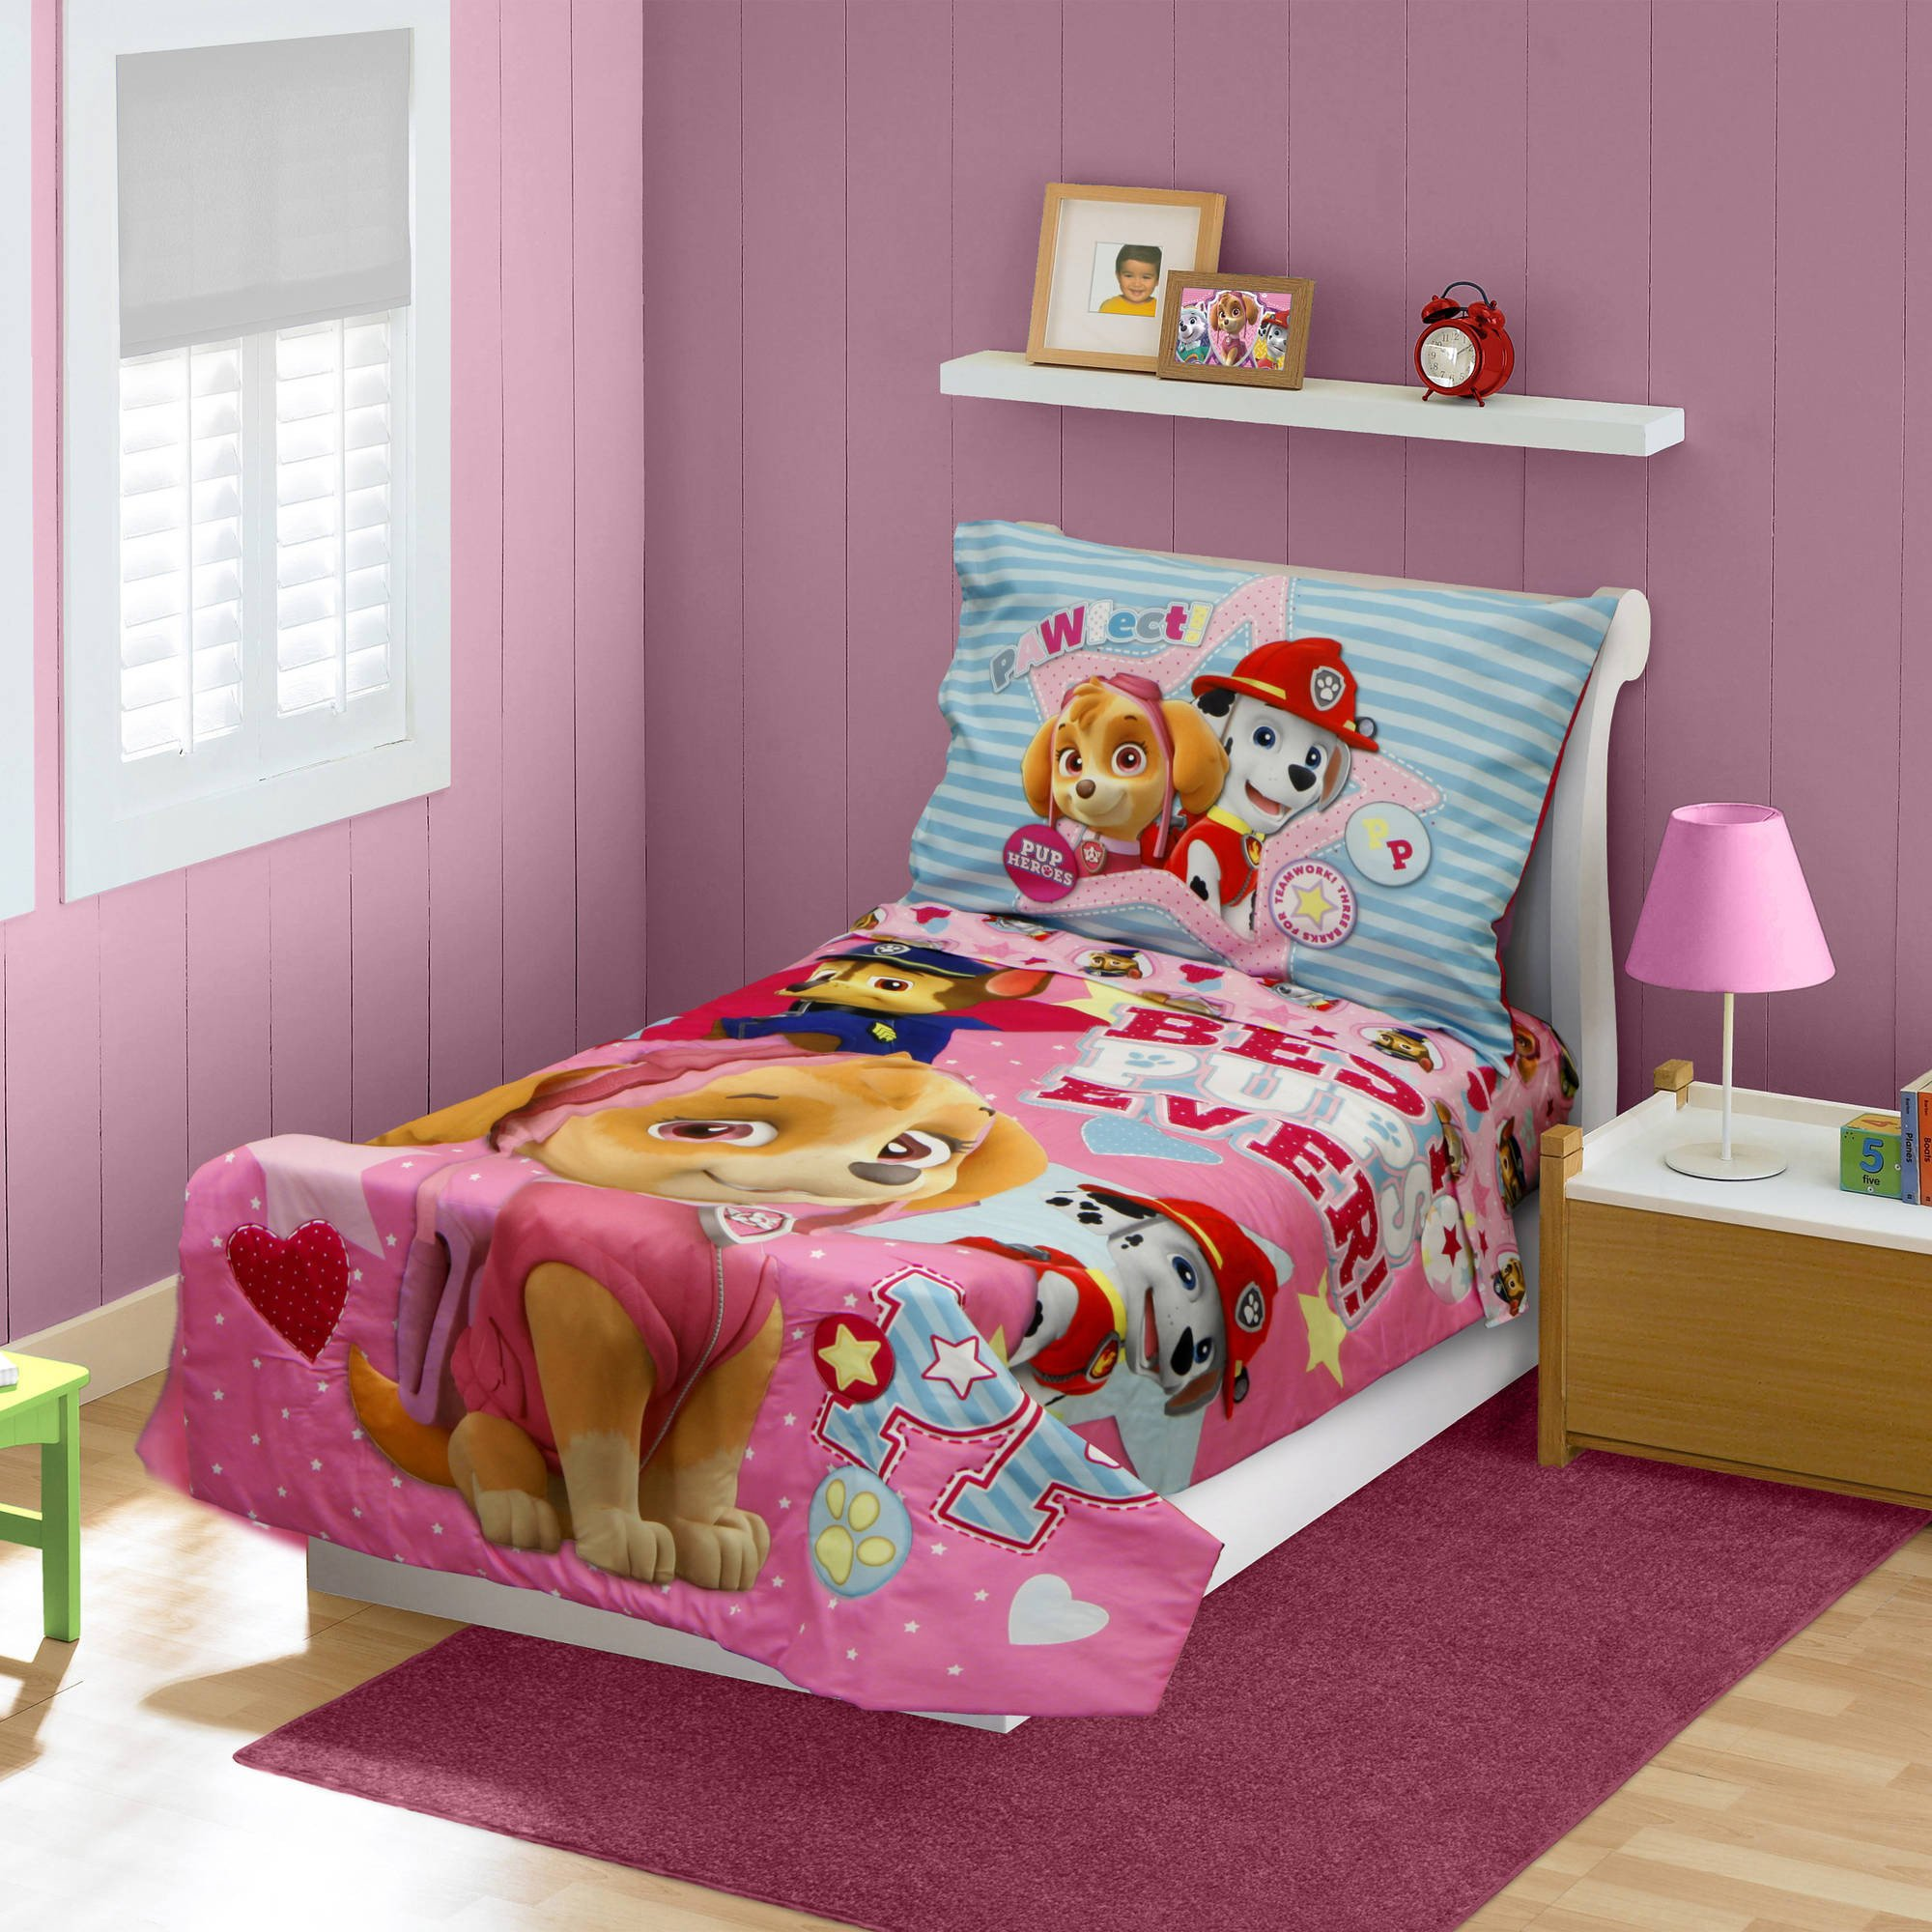 Disney Princess Bedroom Set Fresh Disney Princess Twin Bedding Set Cinderella Bedroom